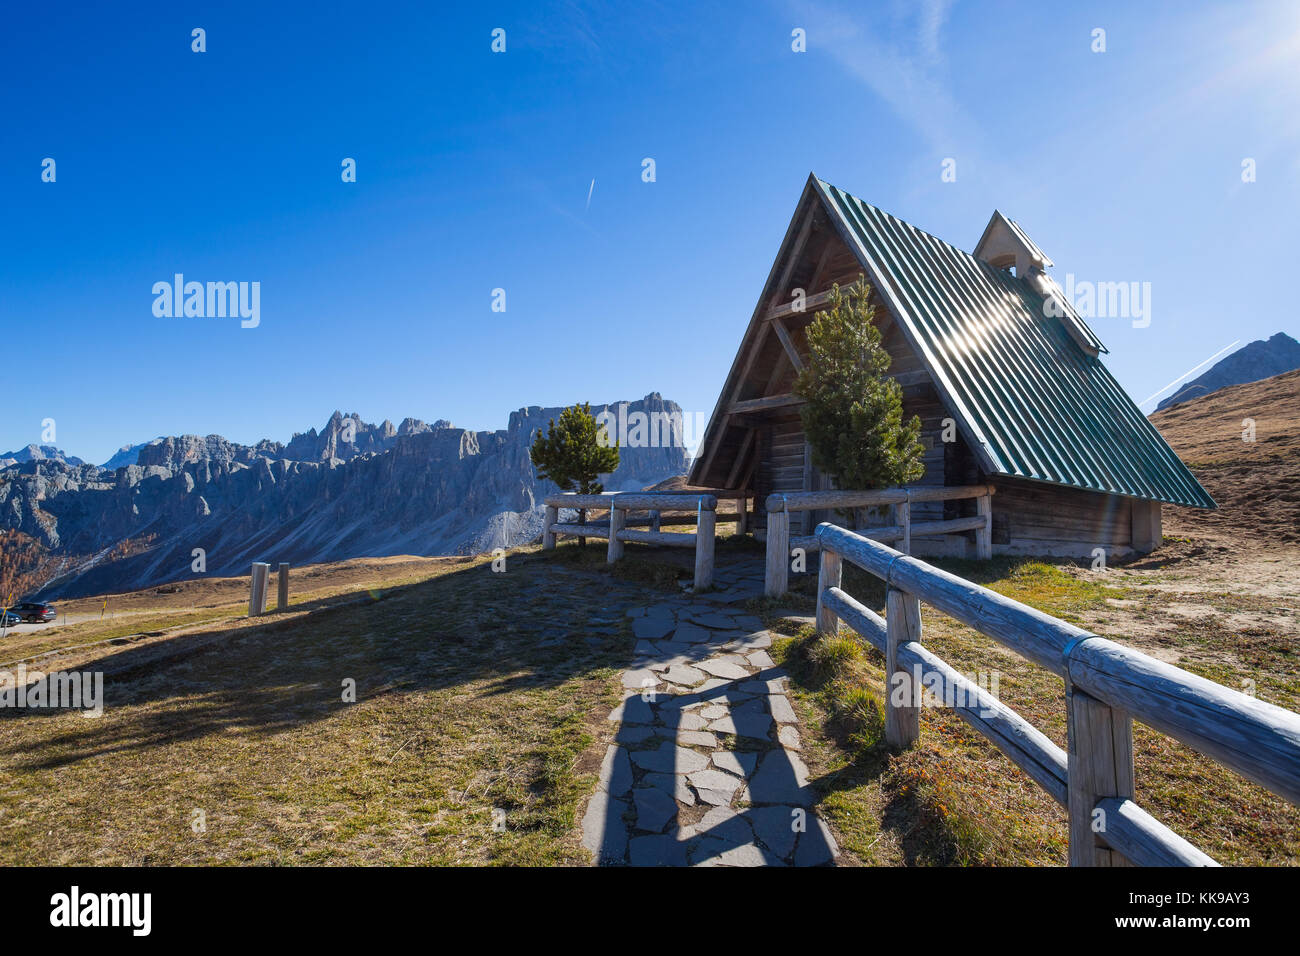 The small church at Giau pass, an alpine Dolomites pass at 2236 metres in Belluno province that connects the villages - Stock Image